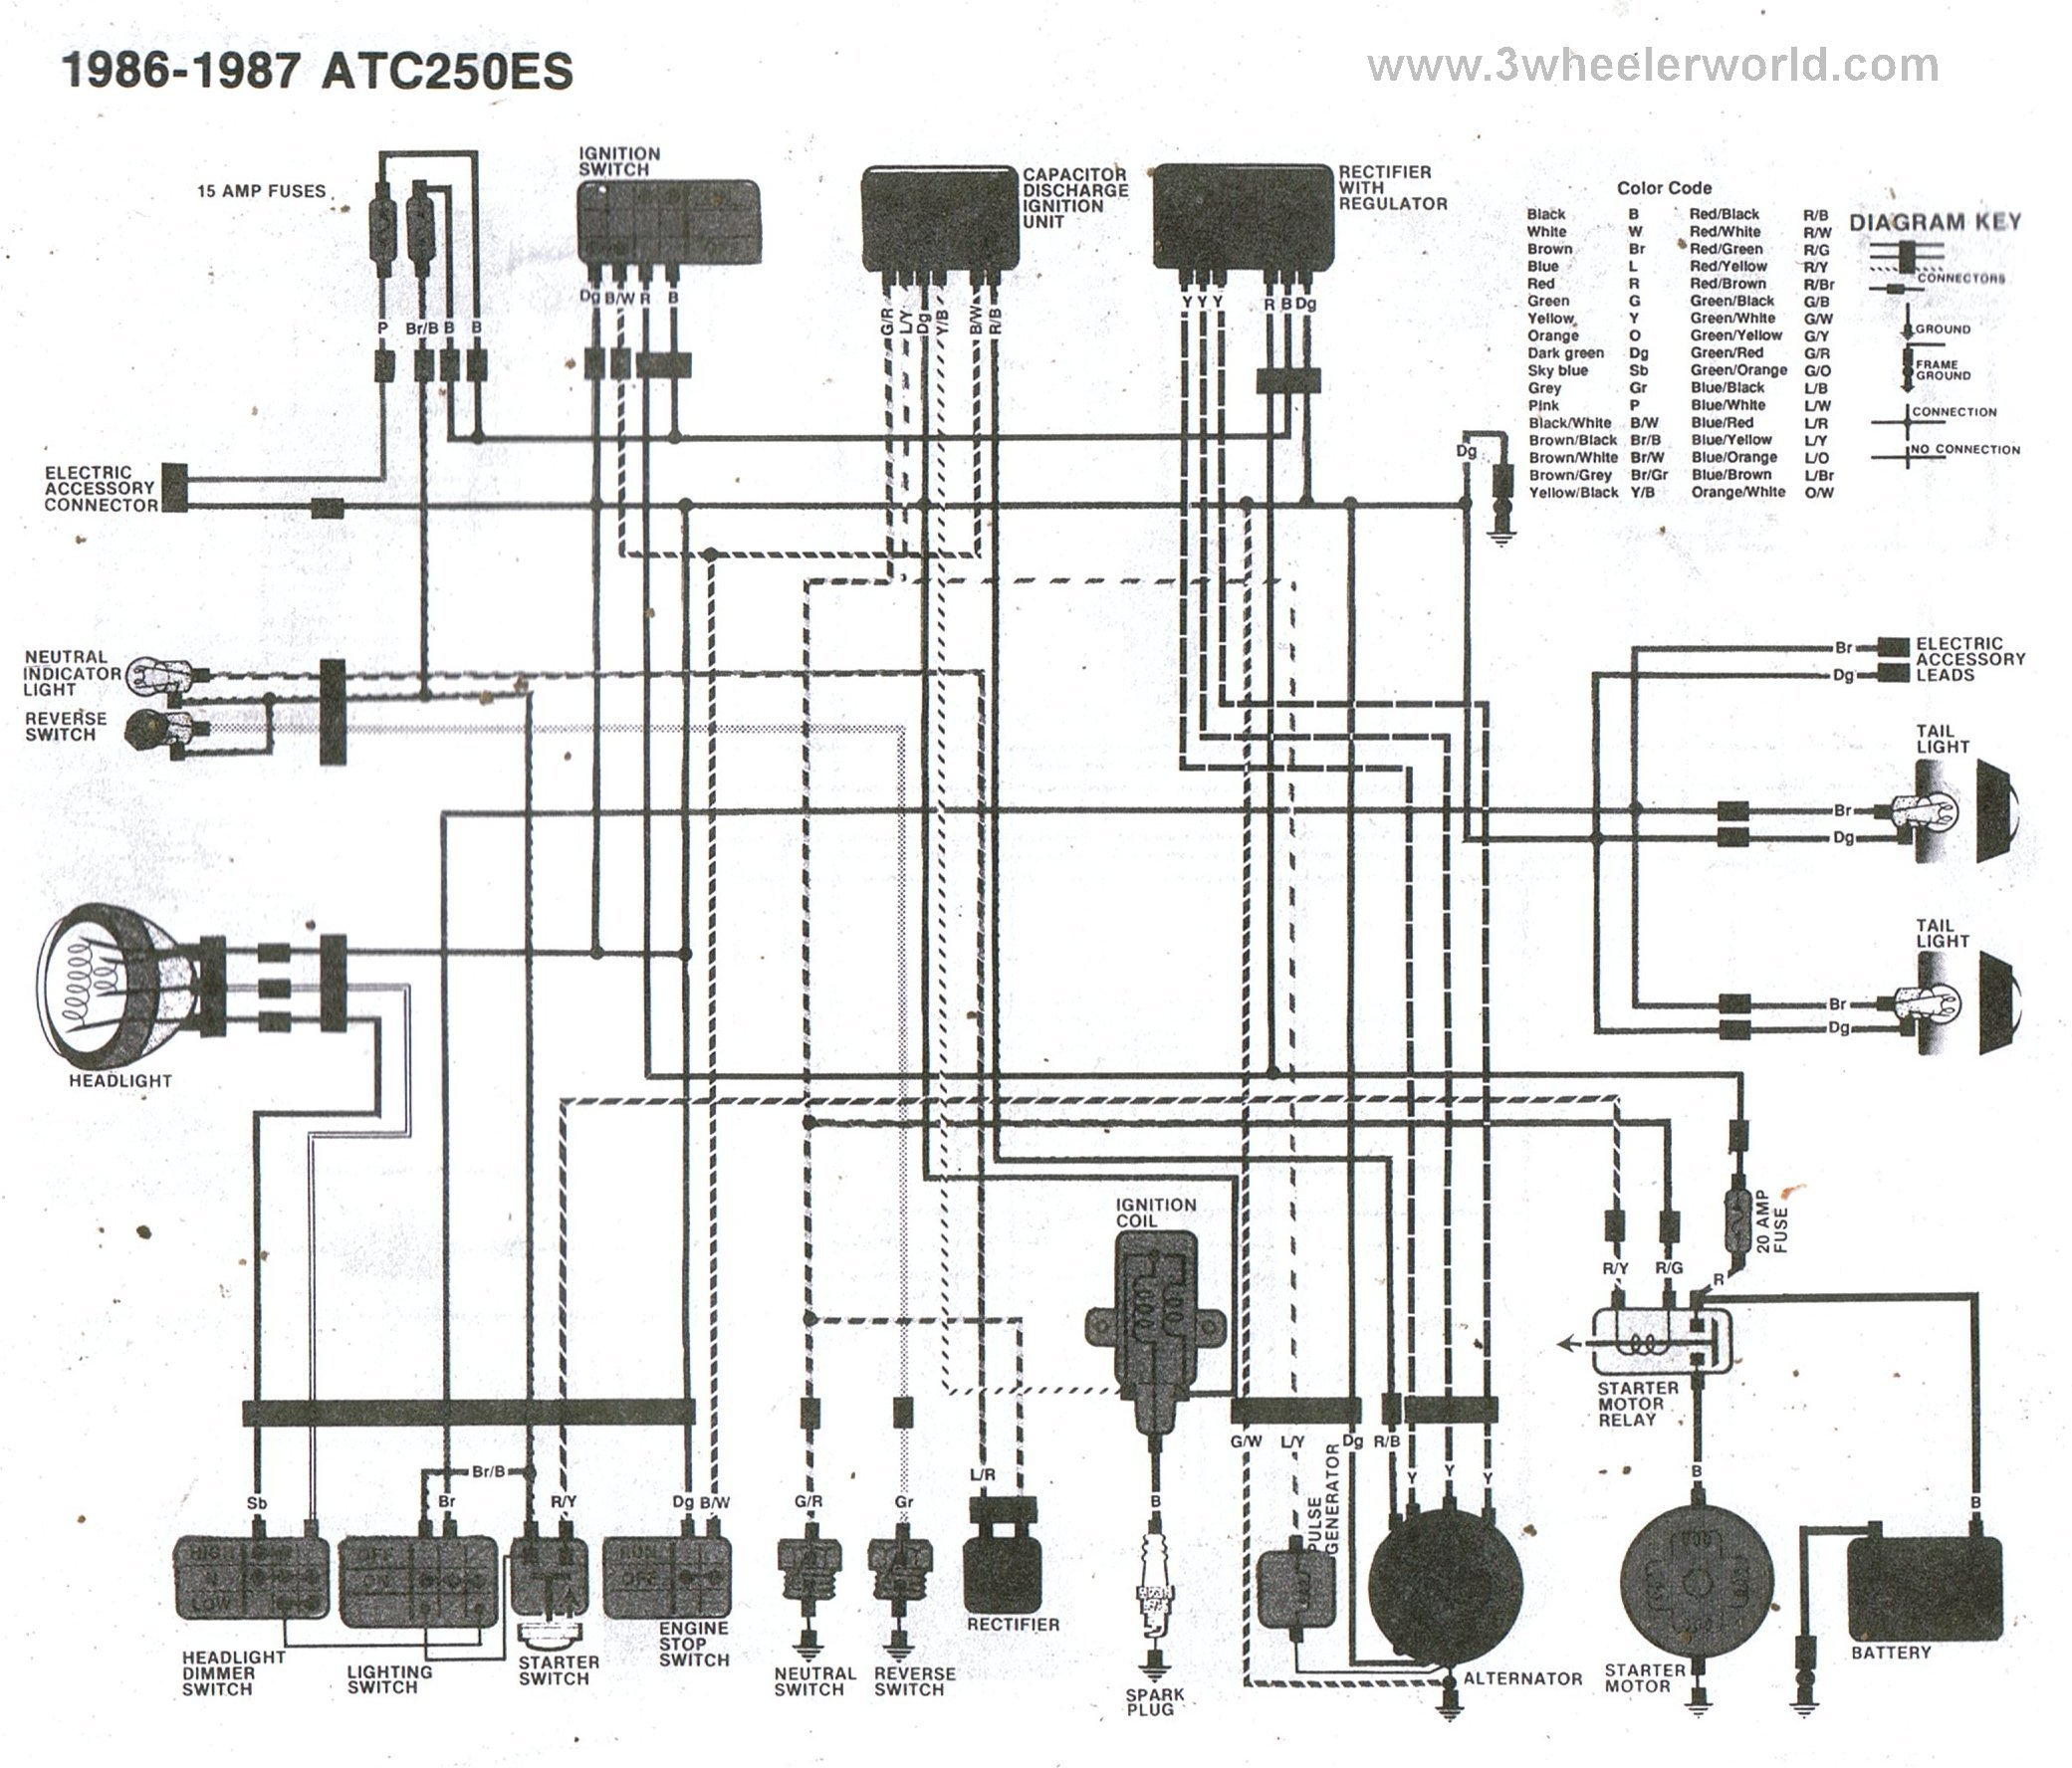 Honda 400ex Wiring Diagram List Of Schematic Circuit 2002 And Schematics Rh Rivcas Org 2001 2005